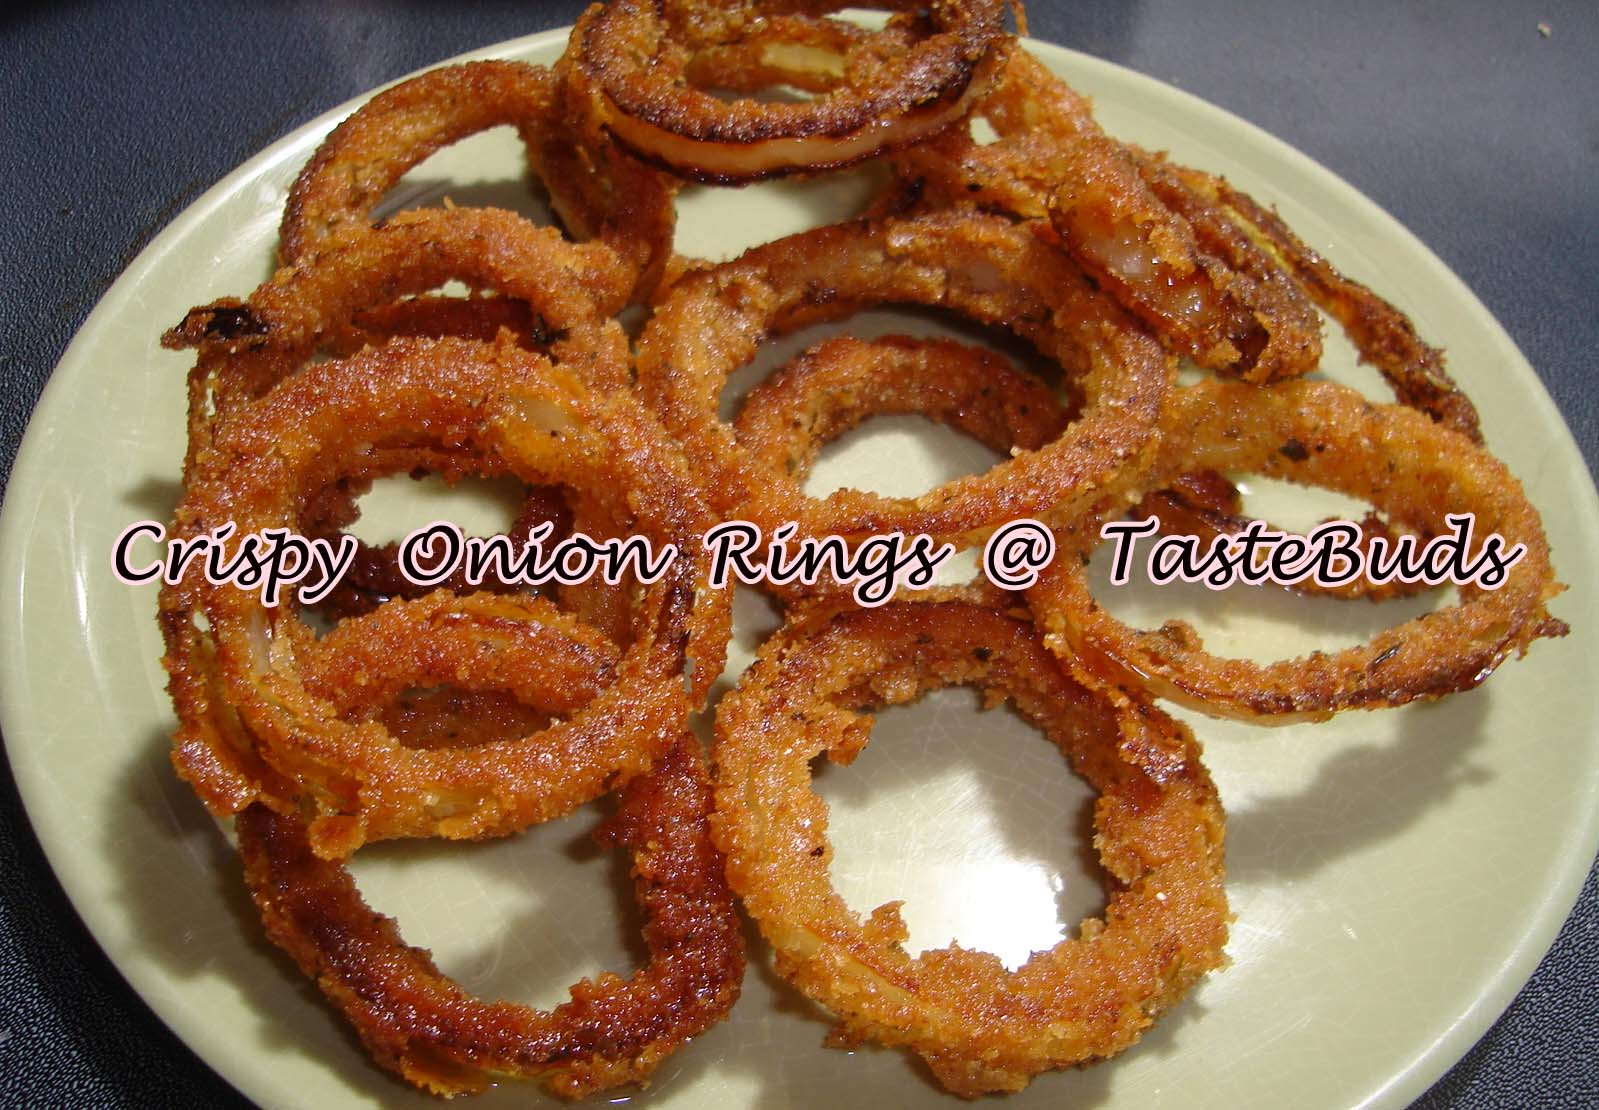 Taste Buds: Crispy Onion Rings